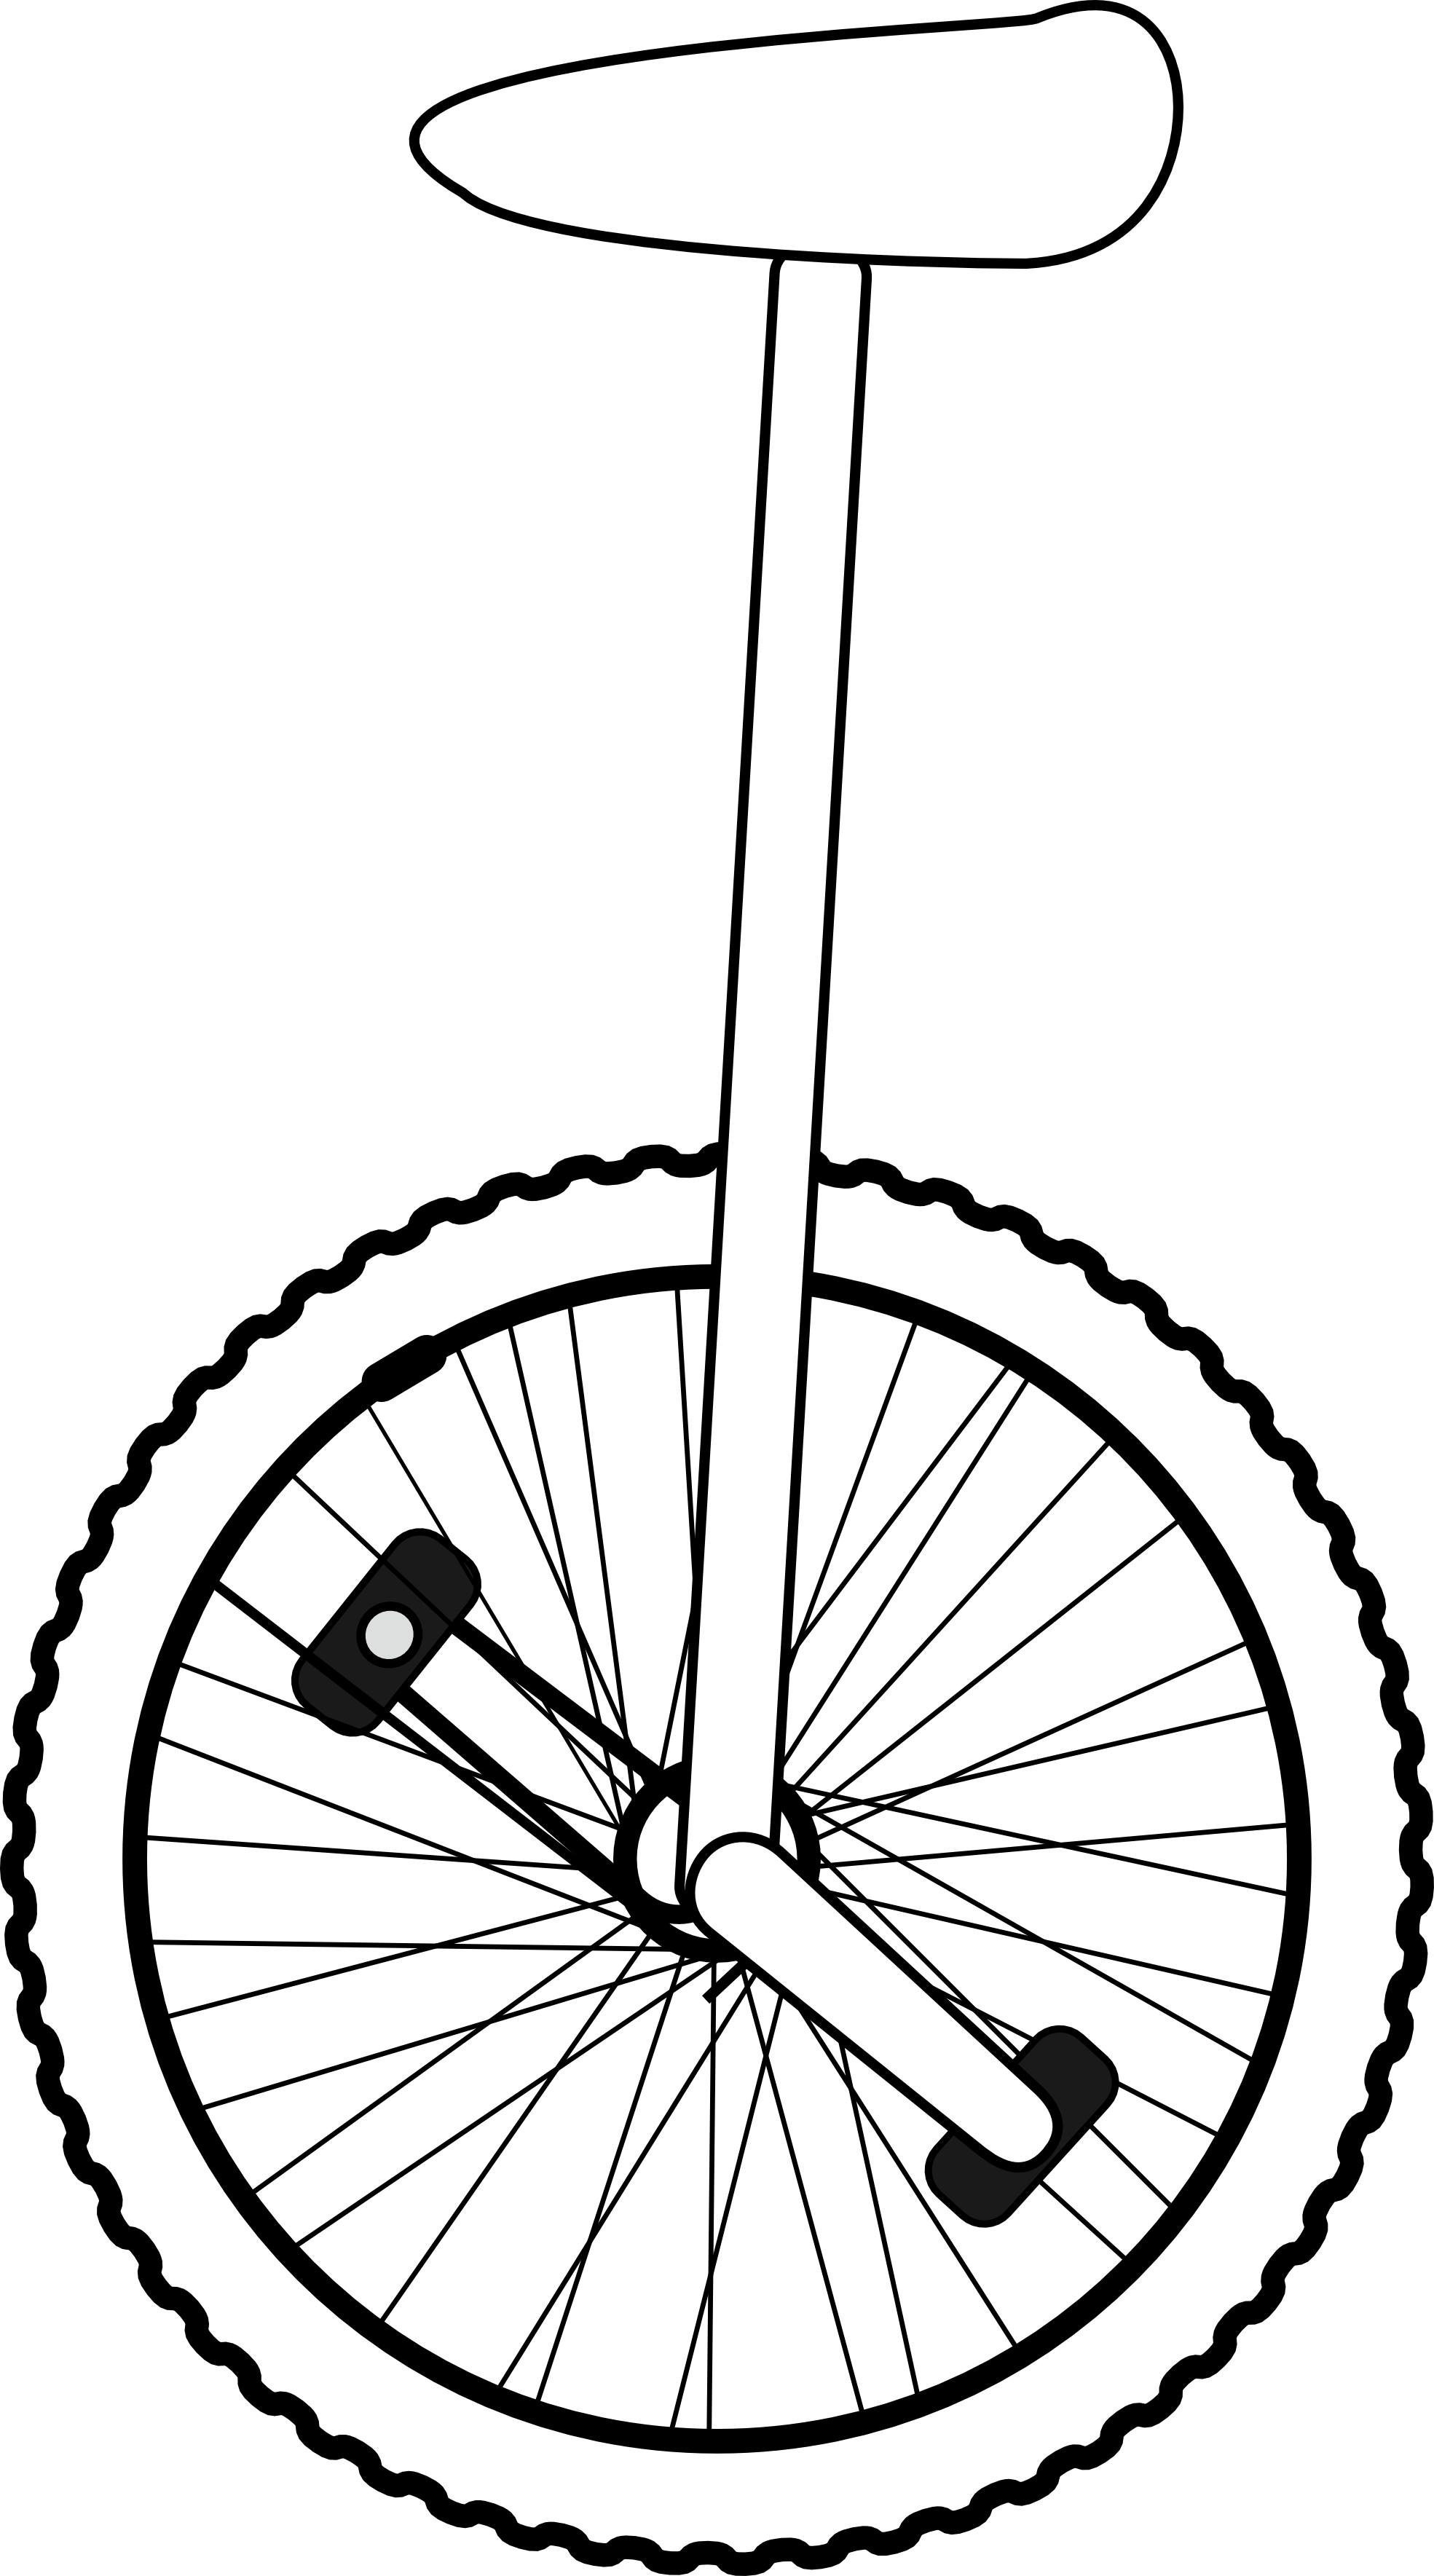 Wheel clipart black and white. Unicycle panda free images